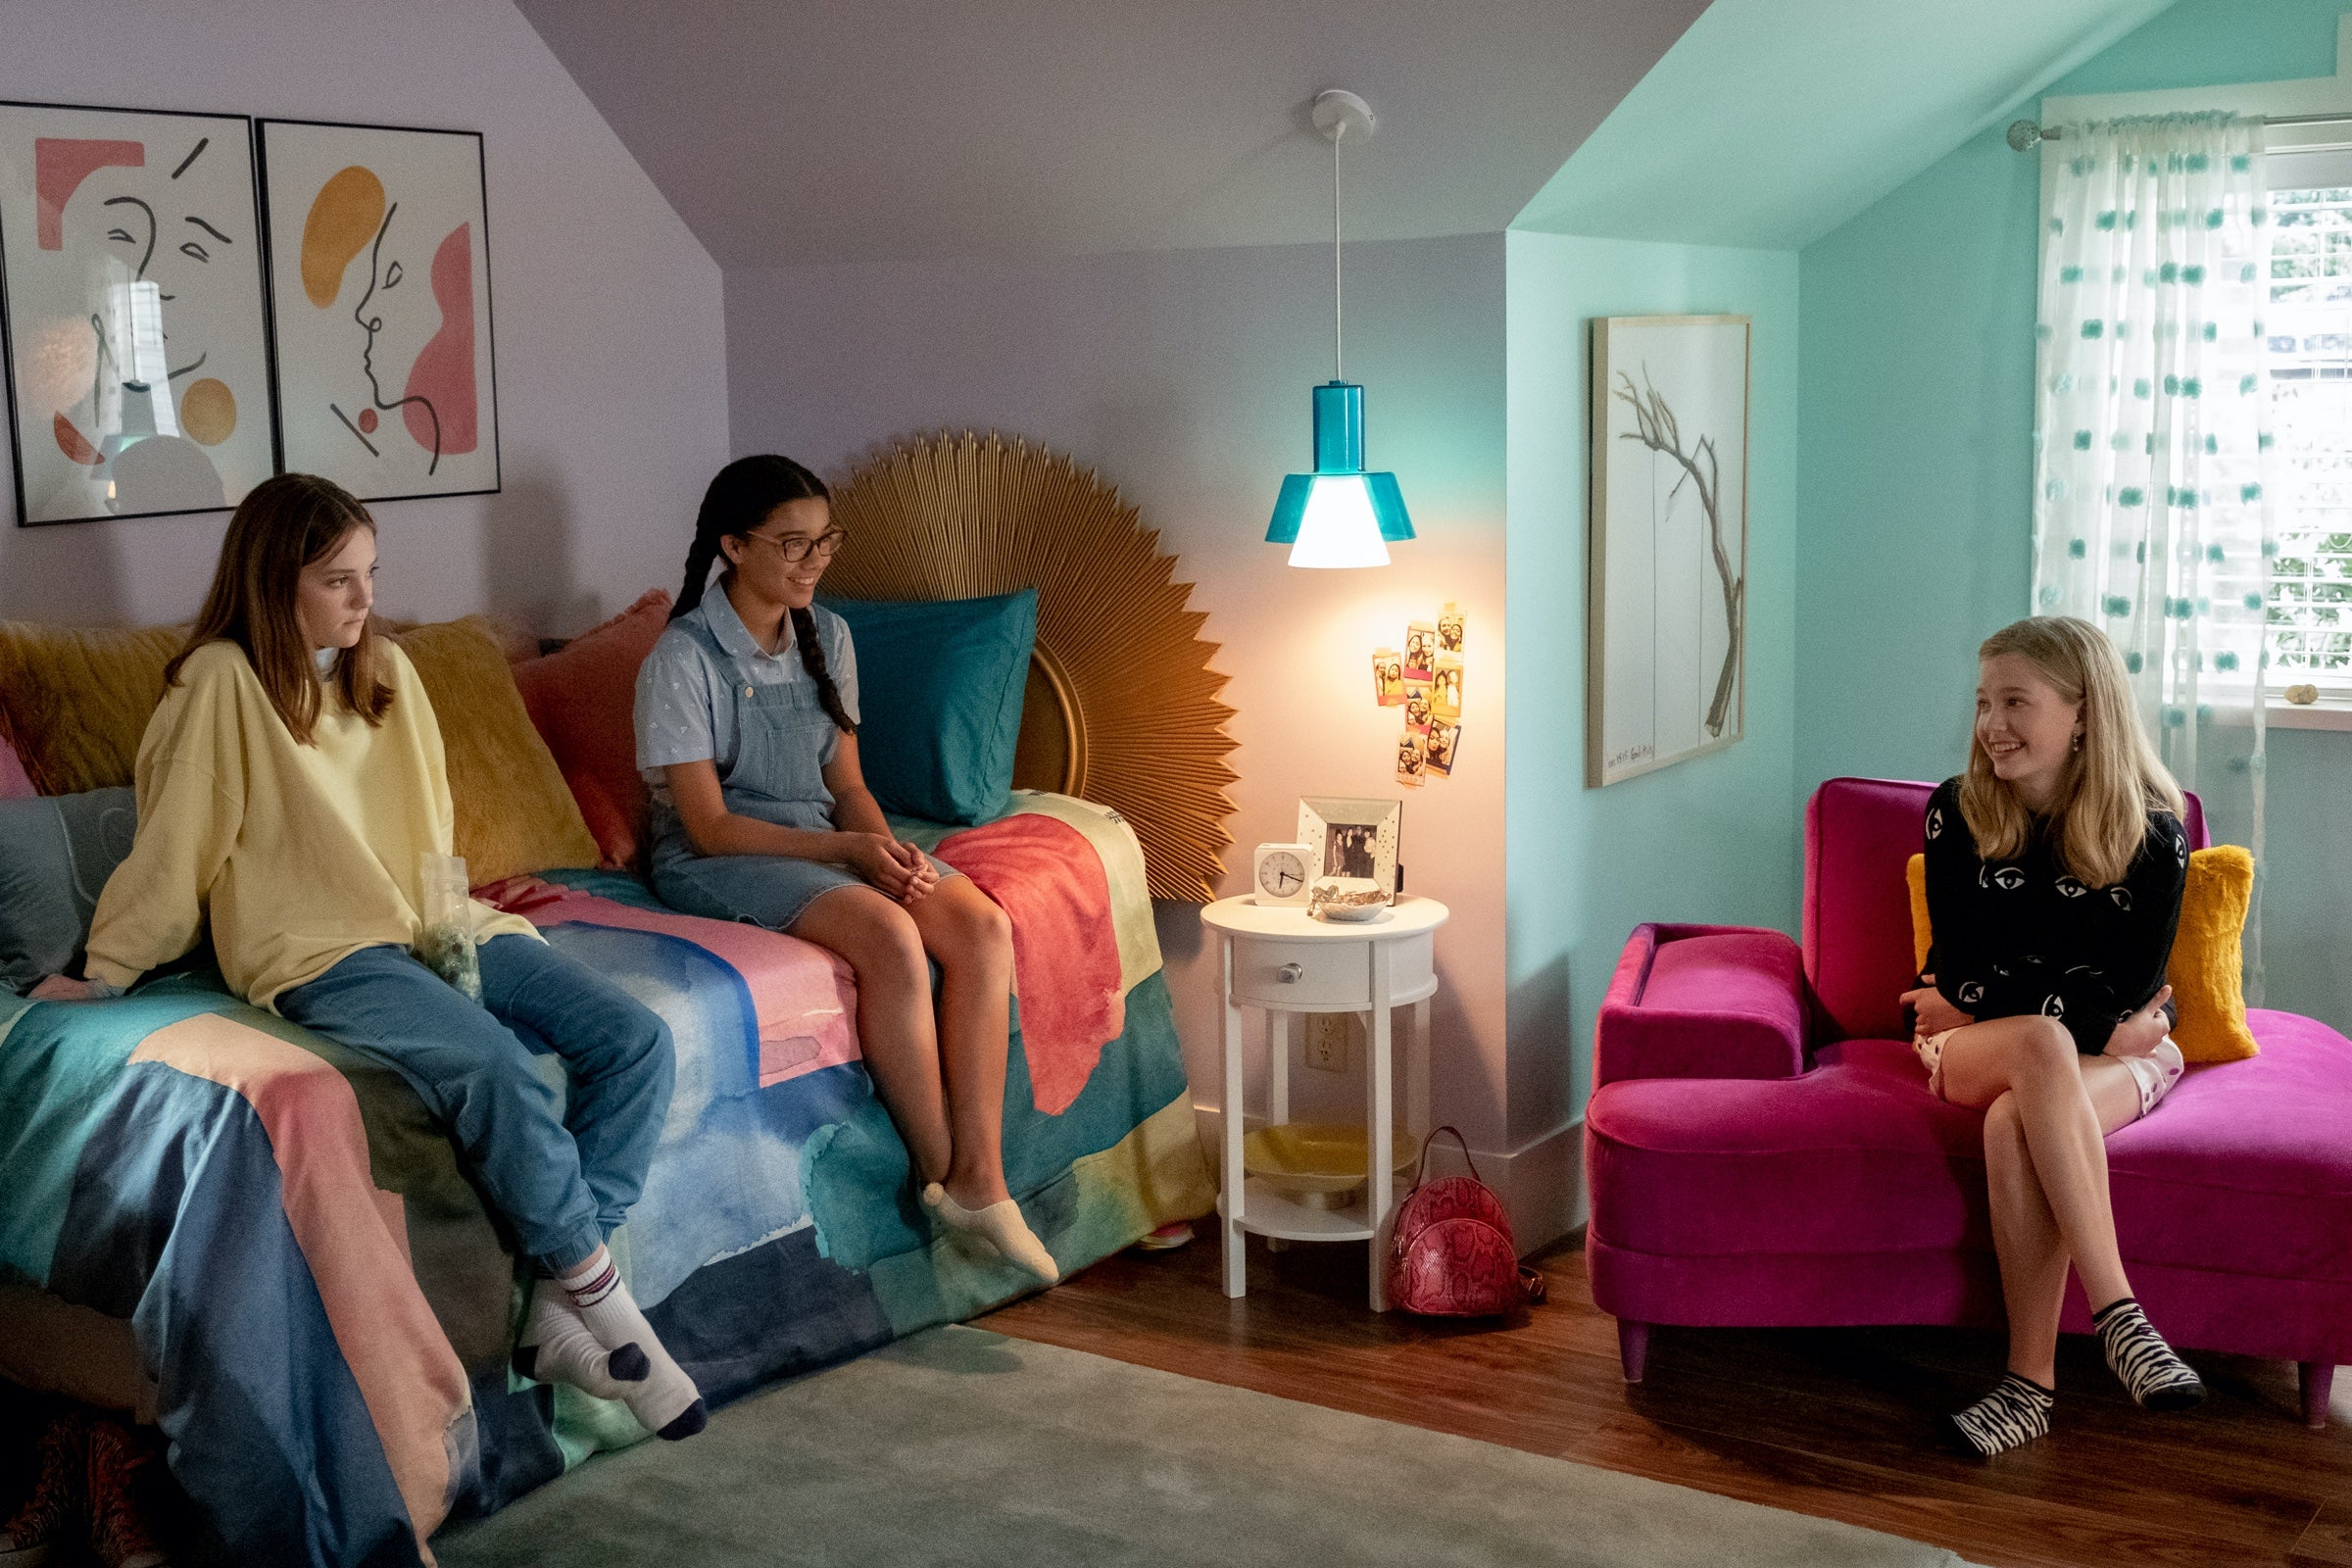 The Baby-Sitters Club convenes in their bedroom clubhouse